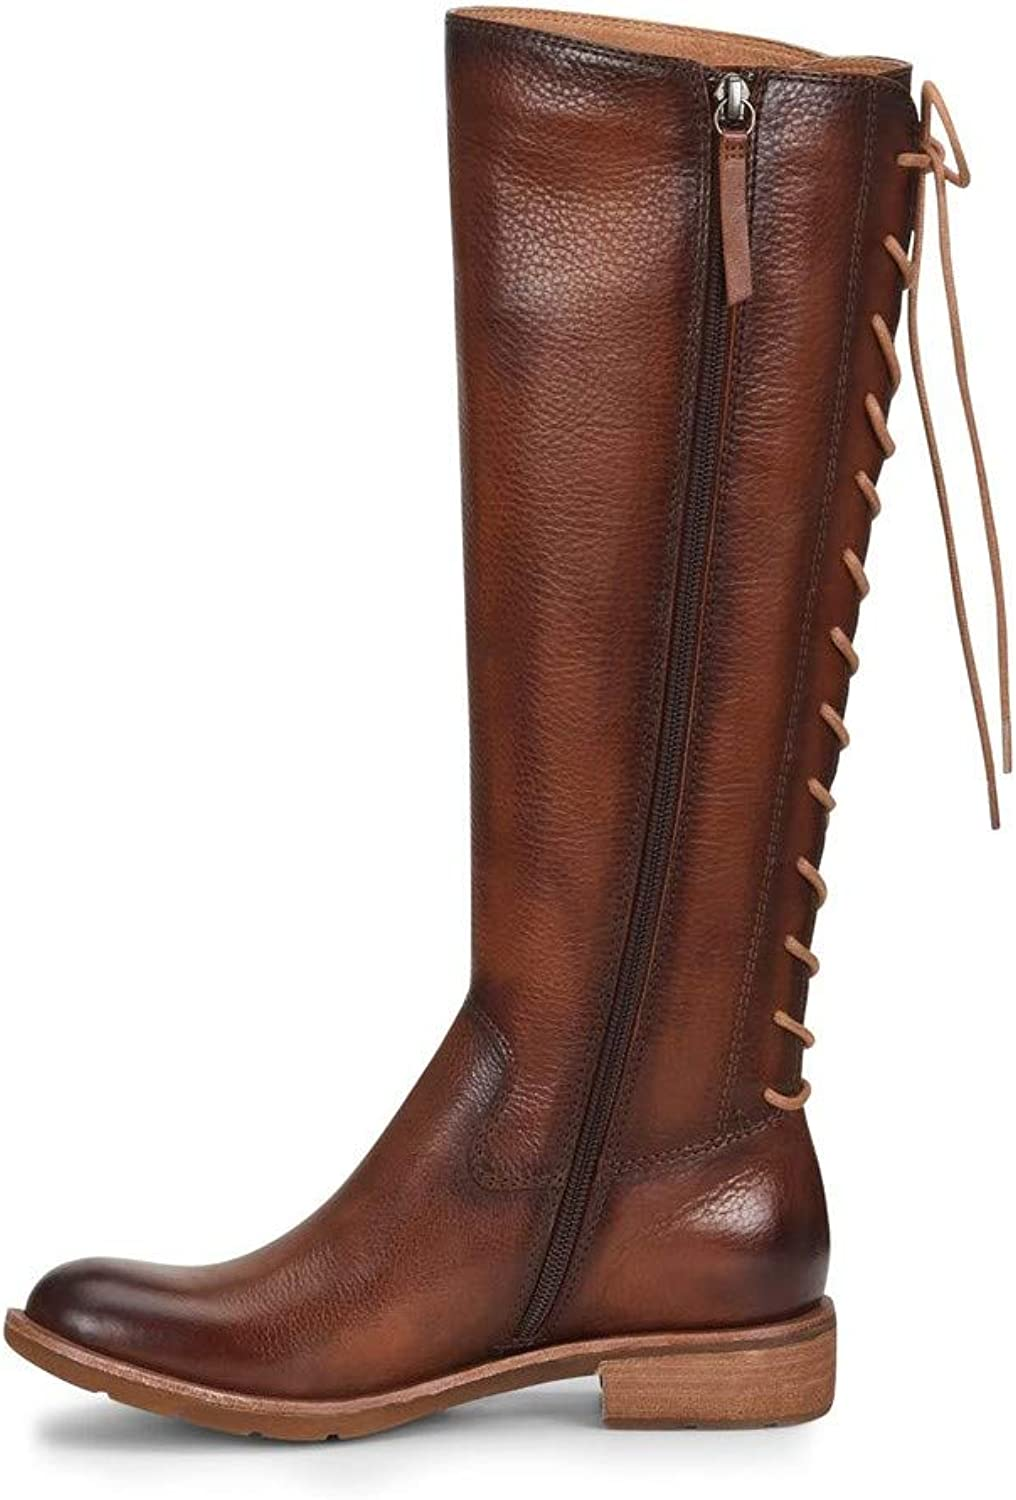 Sofft Womens Sharnell Ii Leather Round Toe Knee High Fashion, Whiskey, Size 9.0